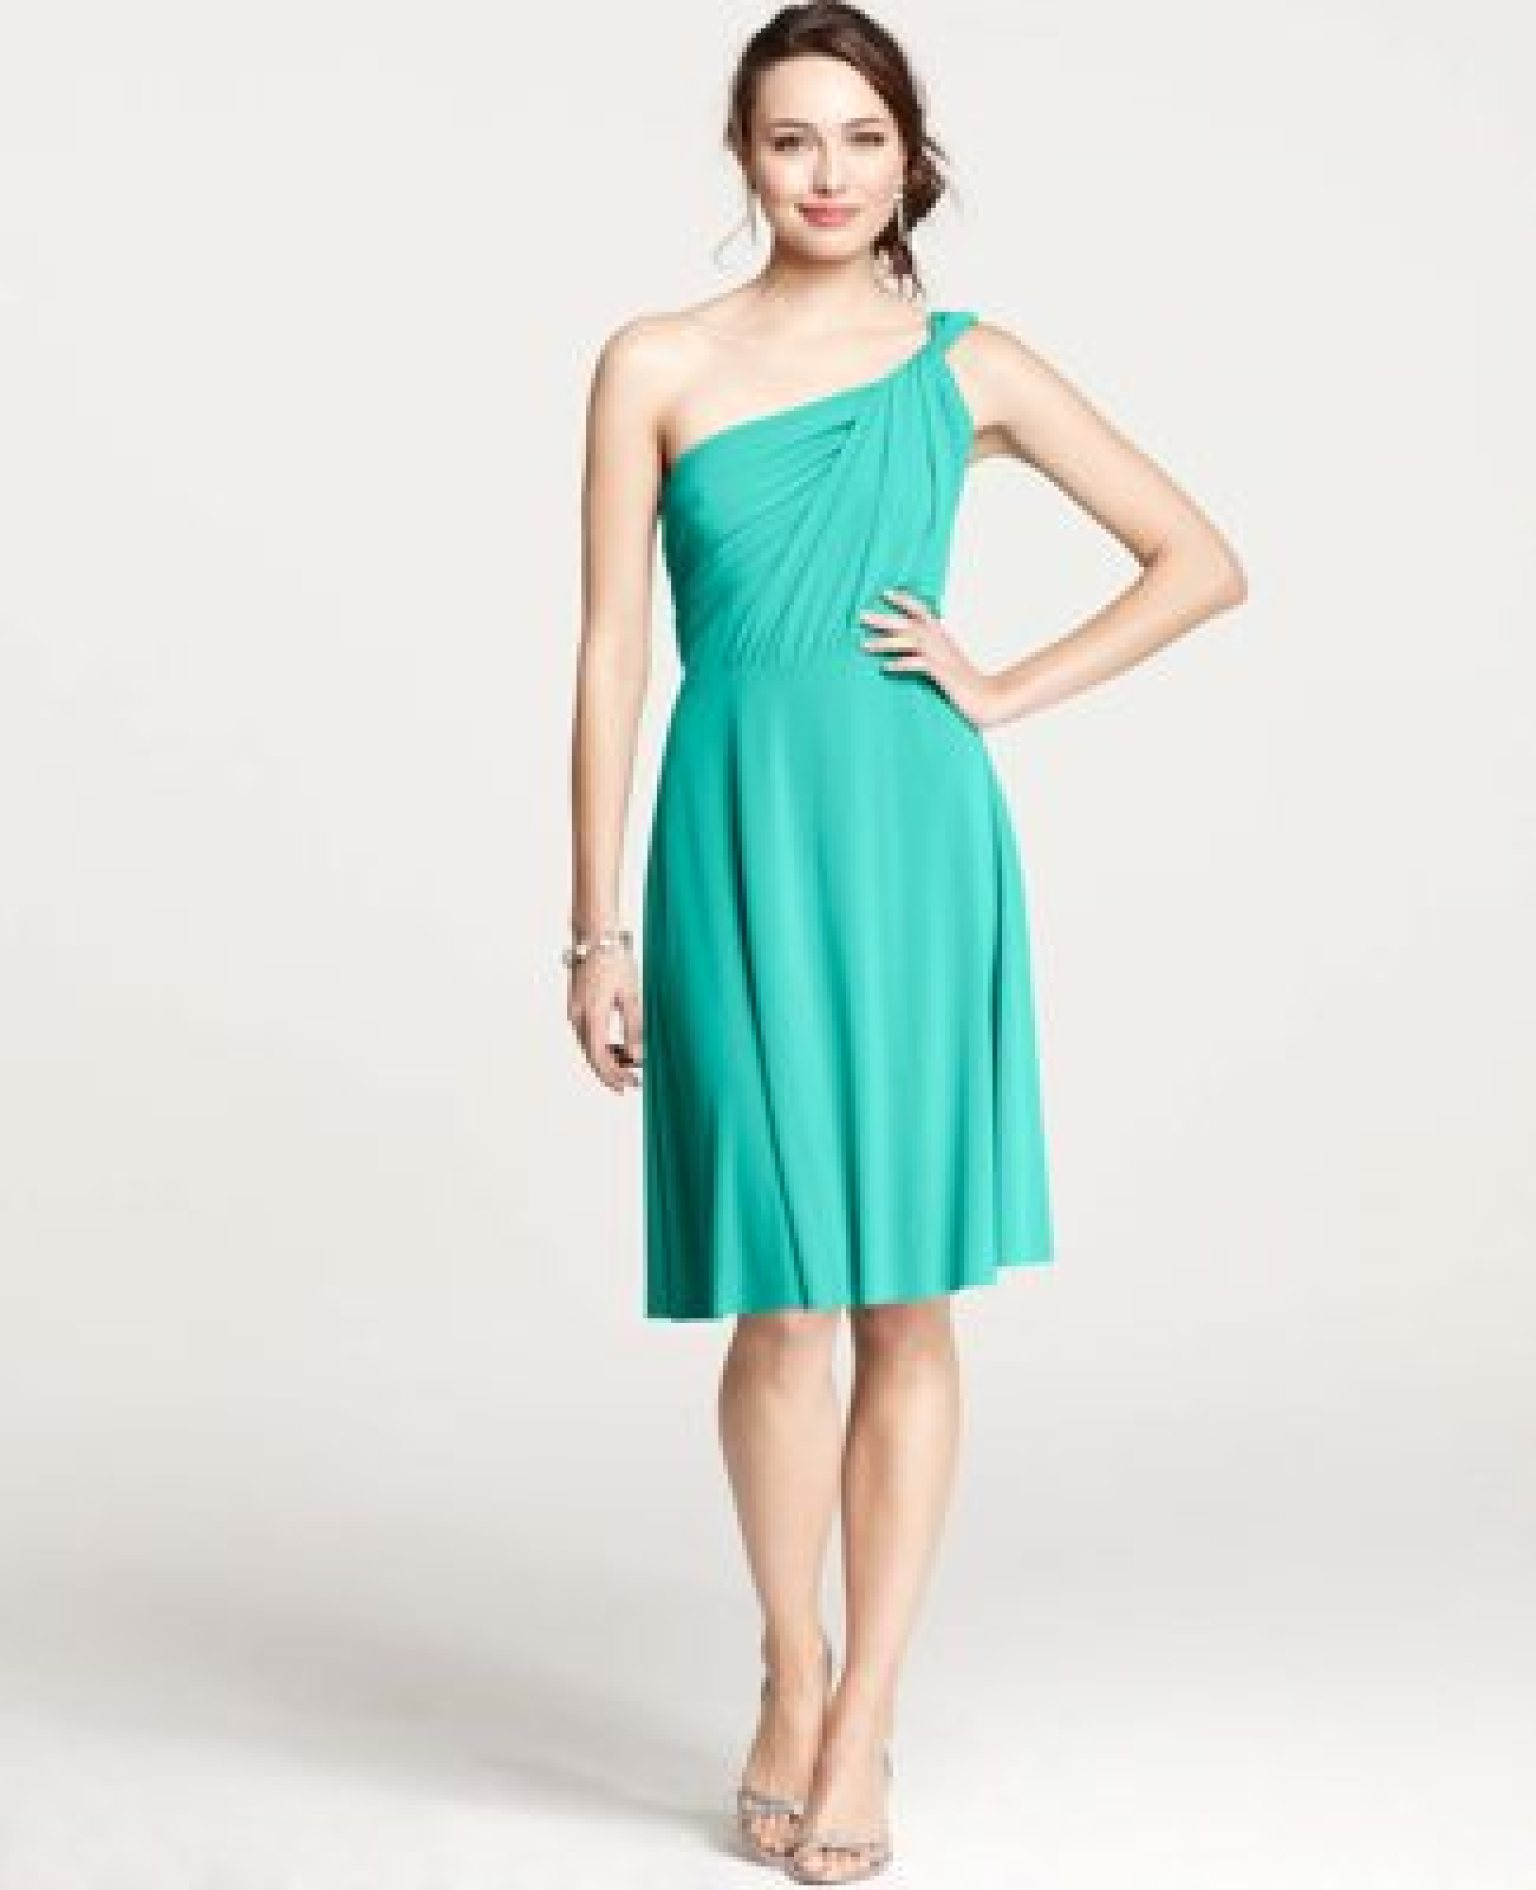 Wedding guest dresses for summer affairs photos huffpost for Dresses for guest at wedding